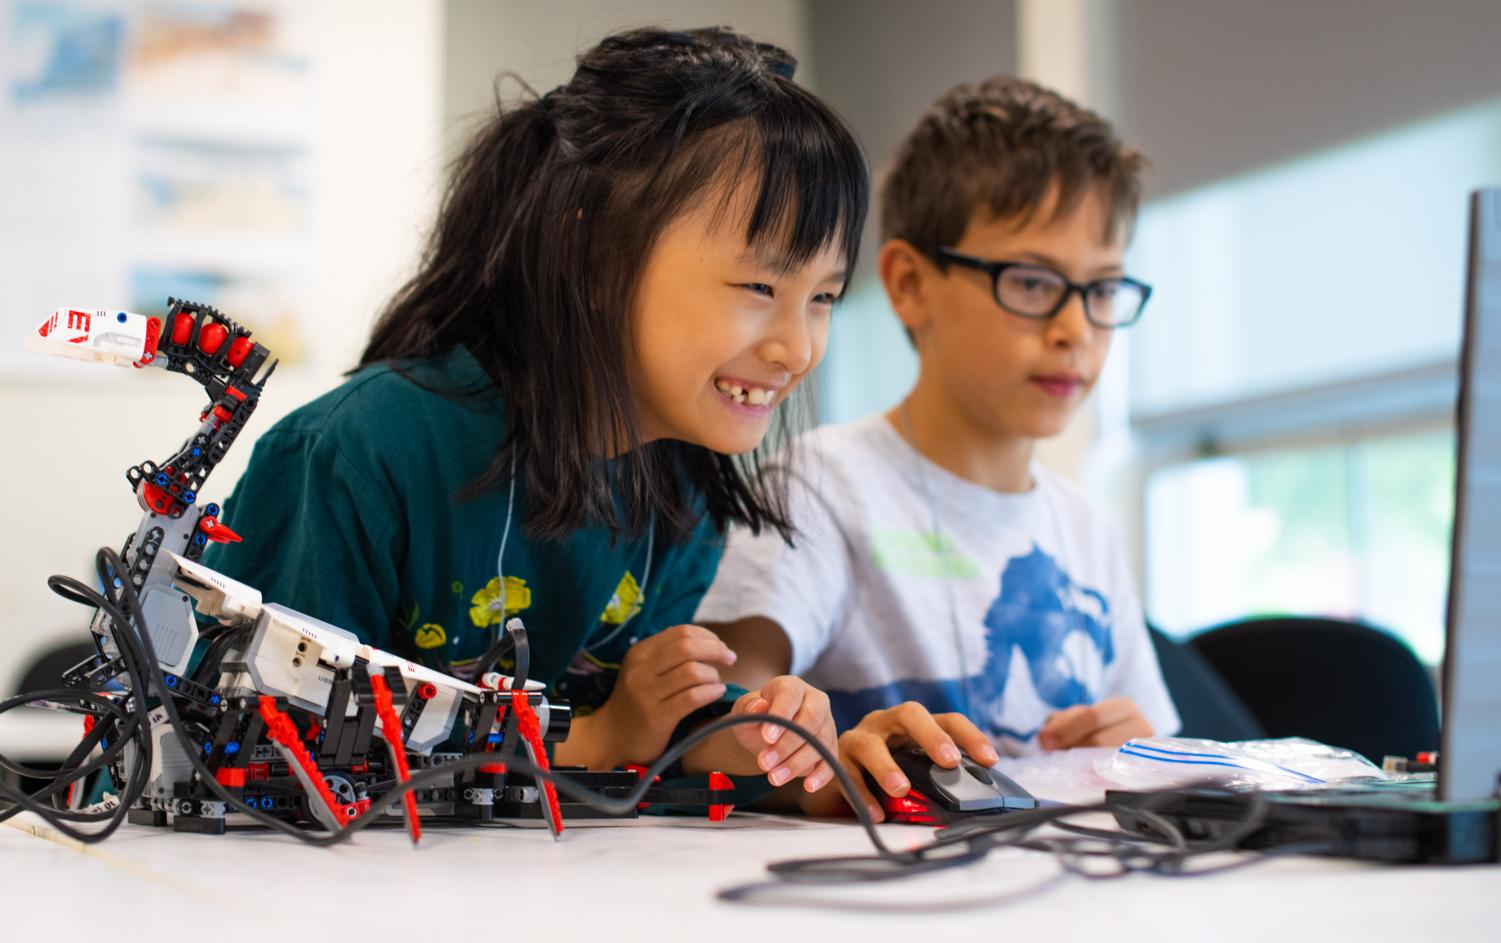 Aurora+Cui+smiles+while+working+with+Jeronimo+Gonzalez+on+their+scorpion+robot+%22Spike%22+during+the+LEGO+Mindstorms+Camp+on+Tuesday%2C+July+9%2C+2019+inside+Quigley+Hall.+The+camp+is+for+children+entering+3rd%2C+4th+and+5th+grade.+%0AThe+founding+father+of+LEGO+System+of+Play+Godtfred+Kristiansen++believed+that+children+needed+something+different+that+would+strengthen+their+imagination+and+creativity.+